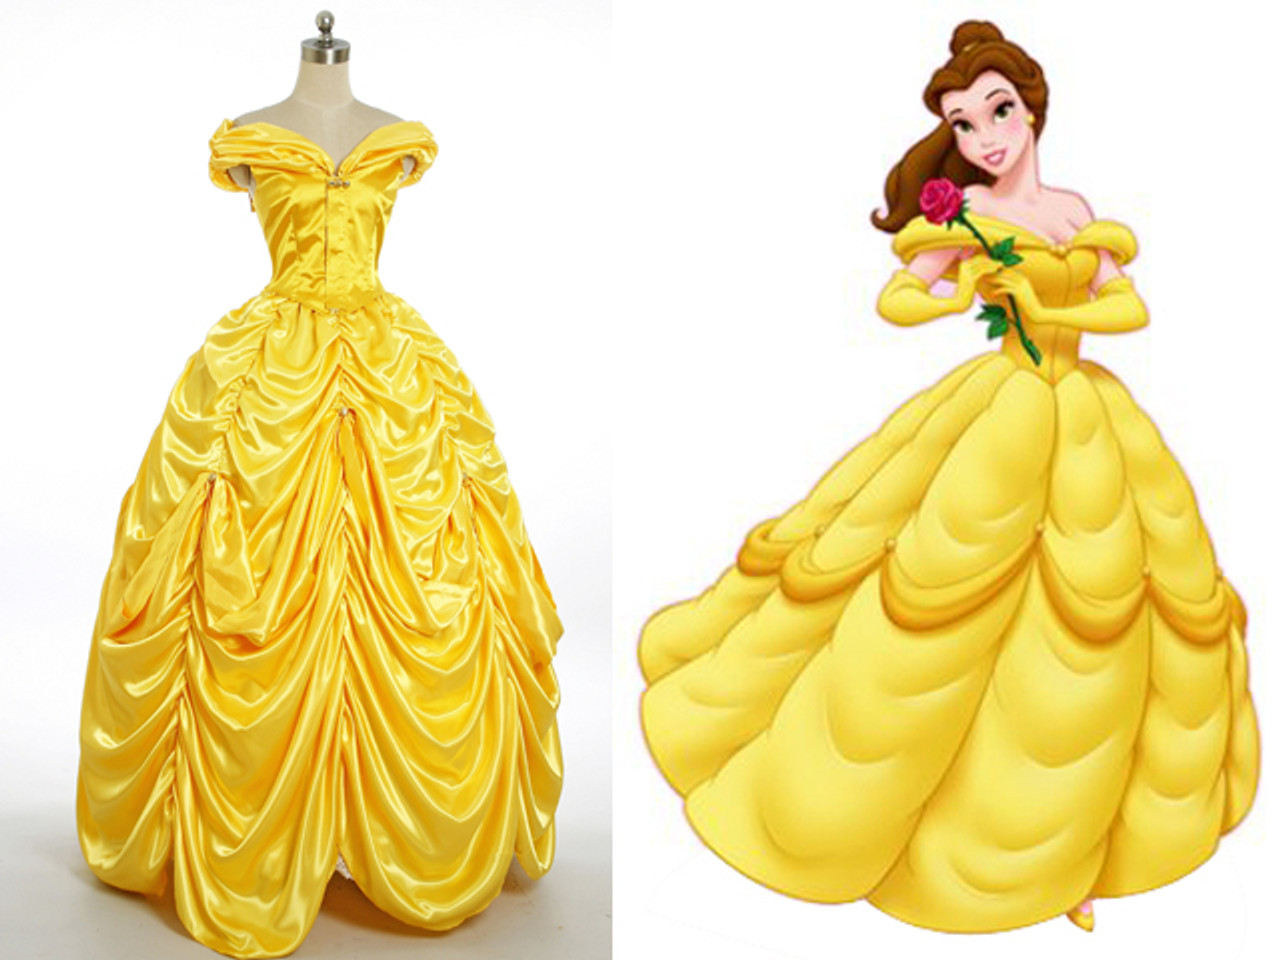 Disney Beauty And The Beast Cosplay Belle Costume Yellow Ball Gown